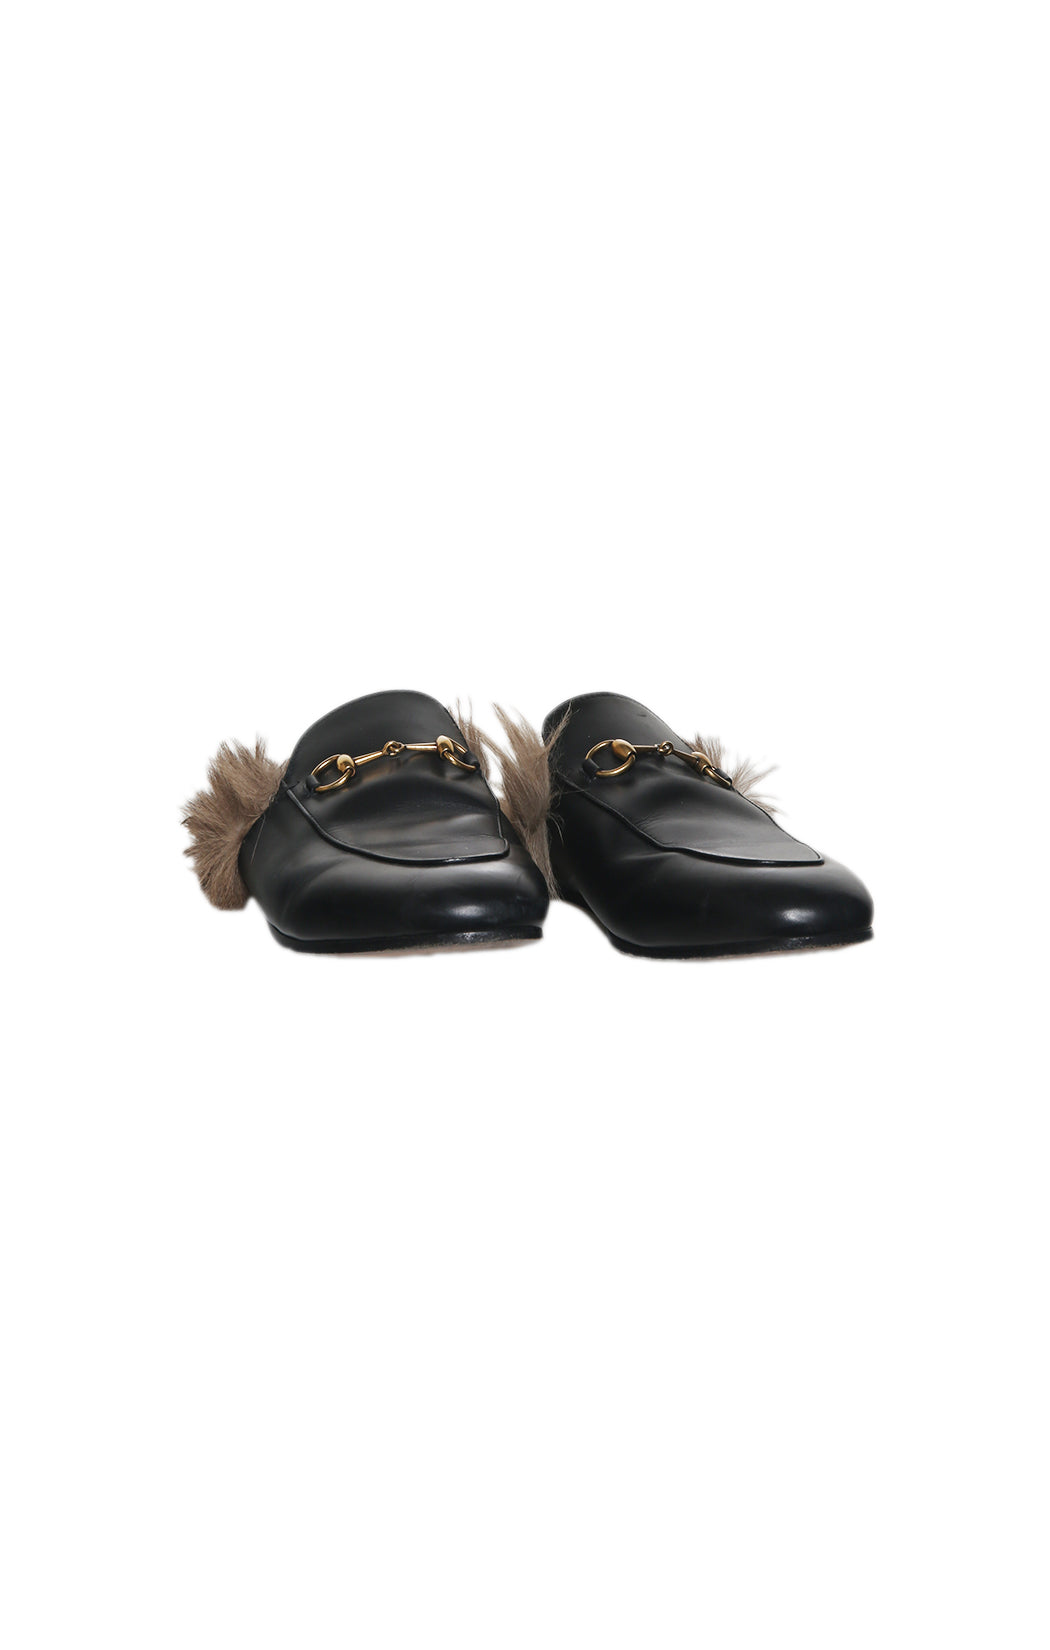 Front view of GUCCI Black Slides with Fur Size: 39 (US 9)